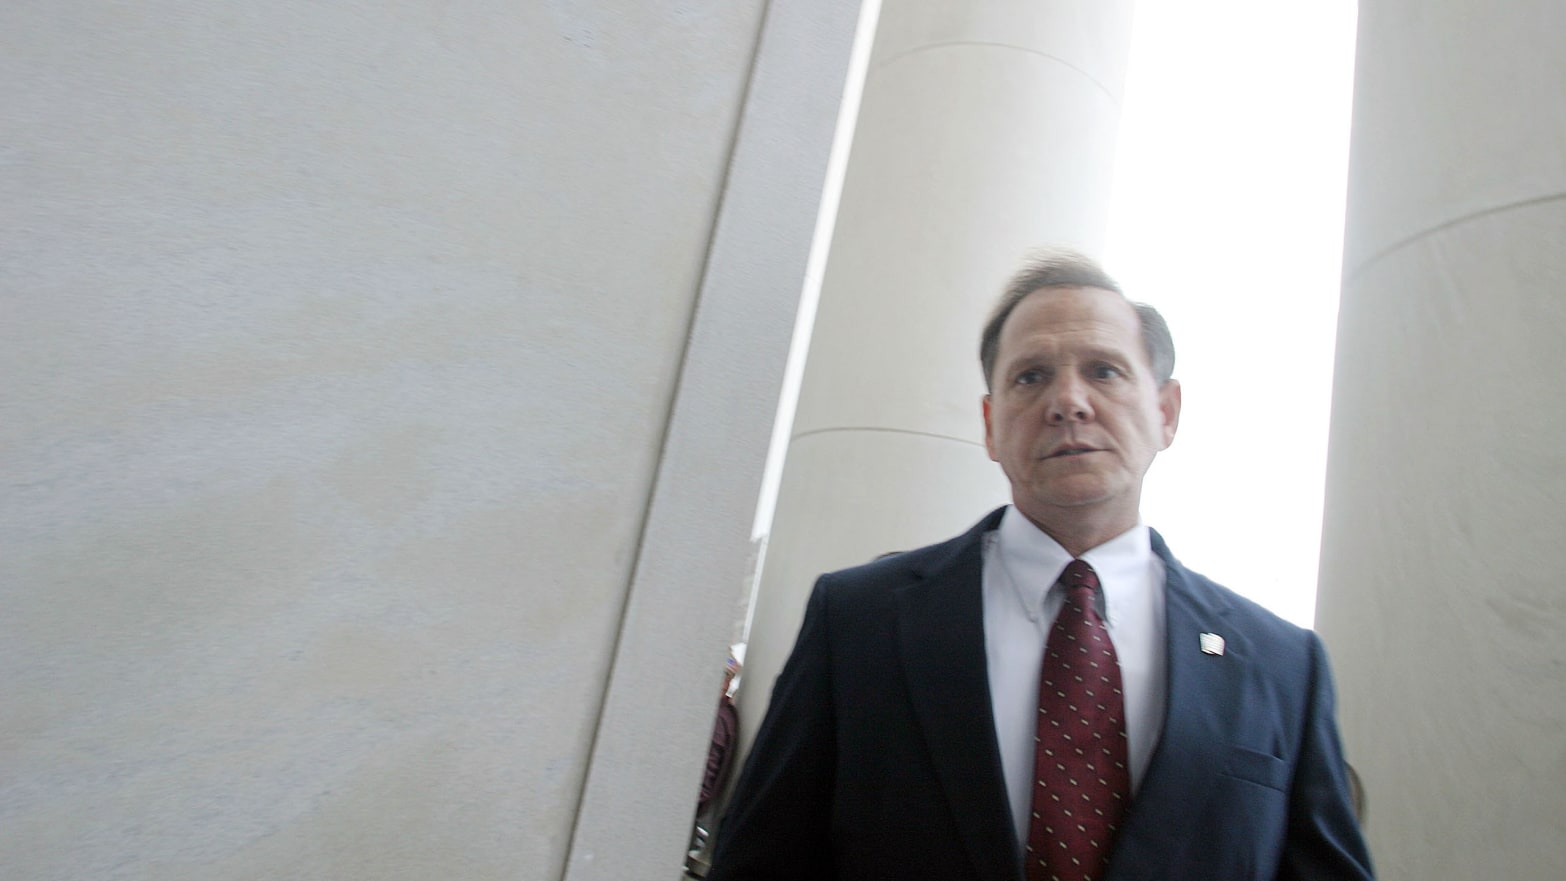 Alabama Supreme Court Chief Justice Roy Moore walks back into the state Judicial Building after addressing supporters.